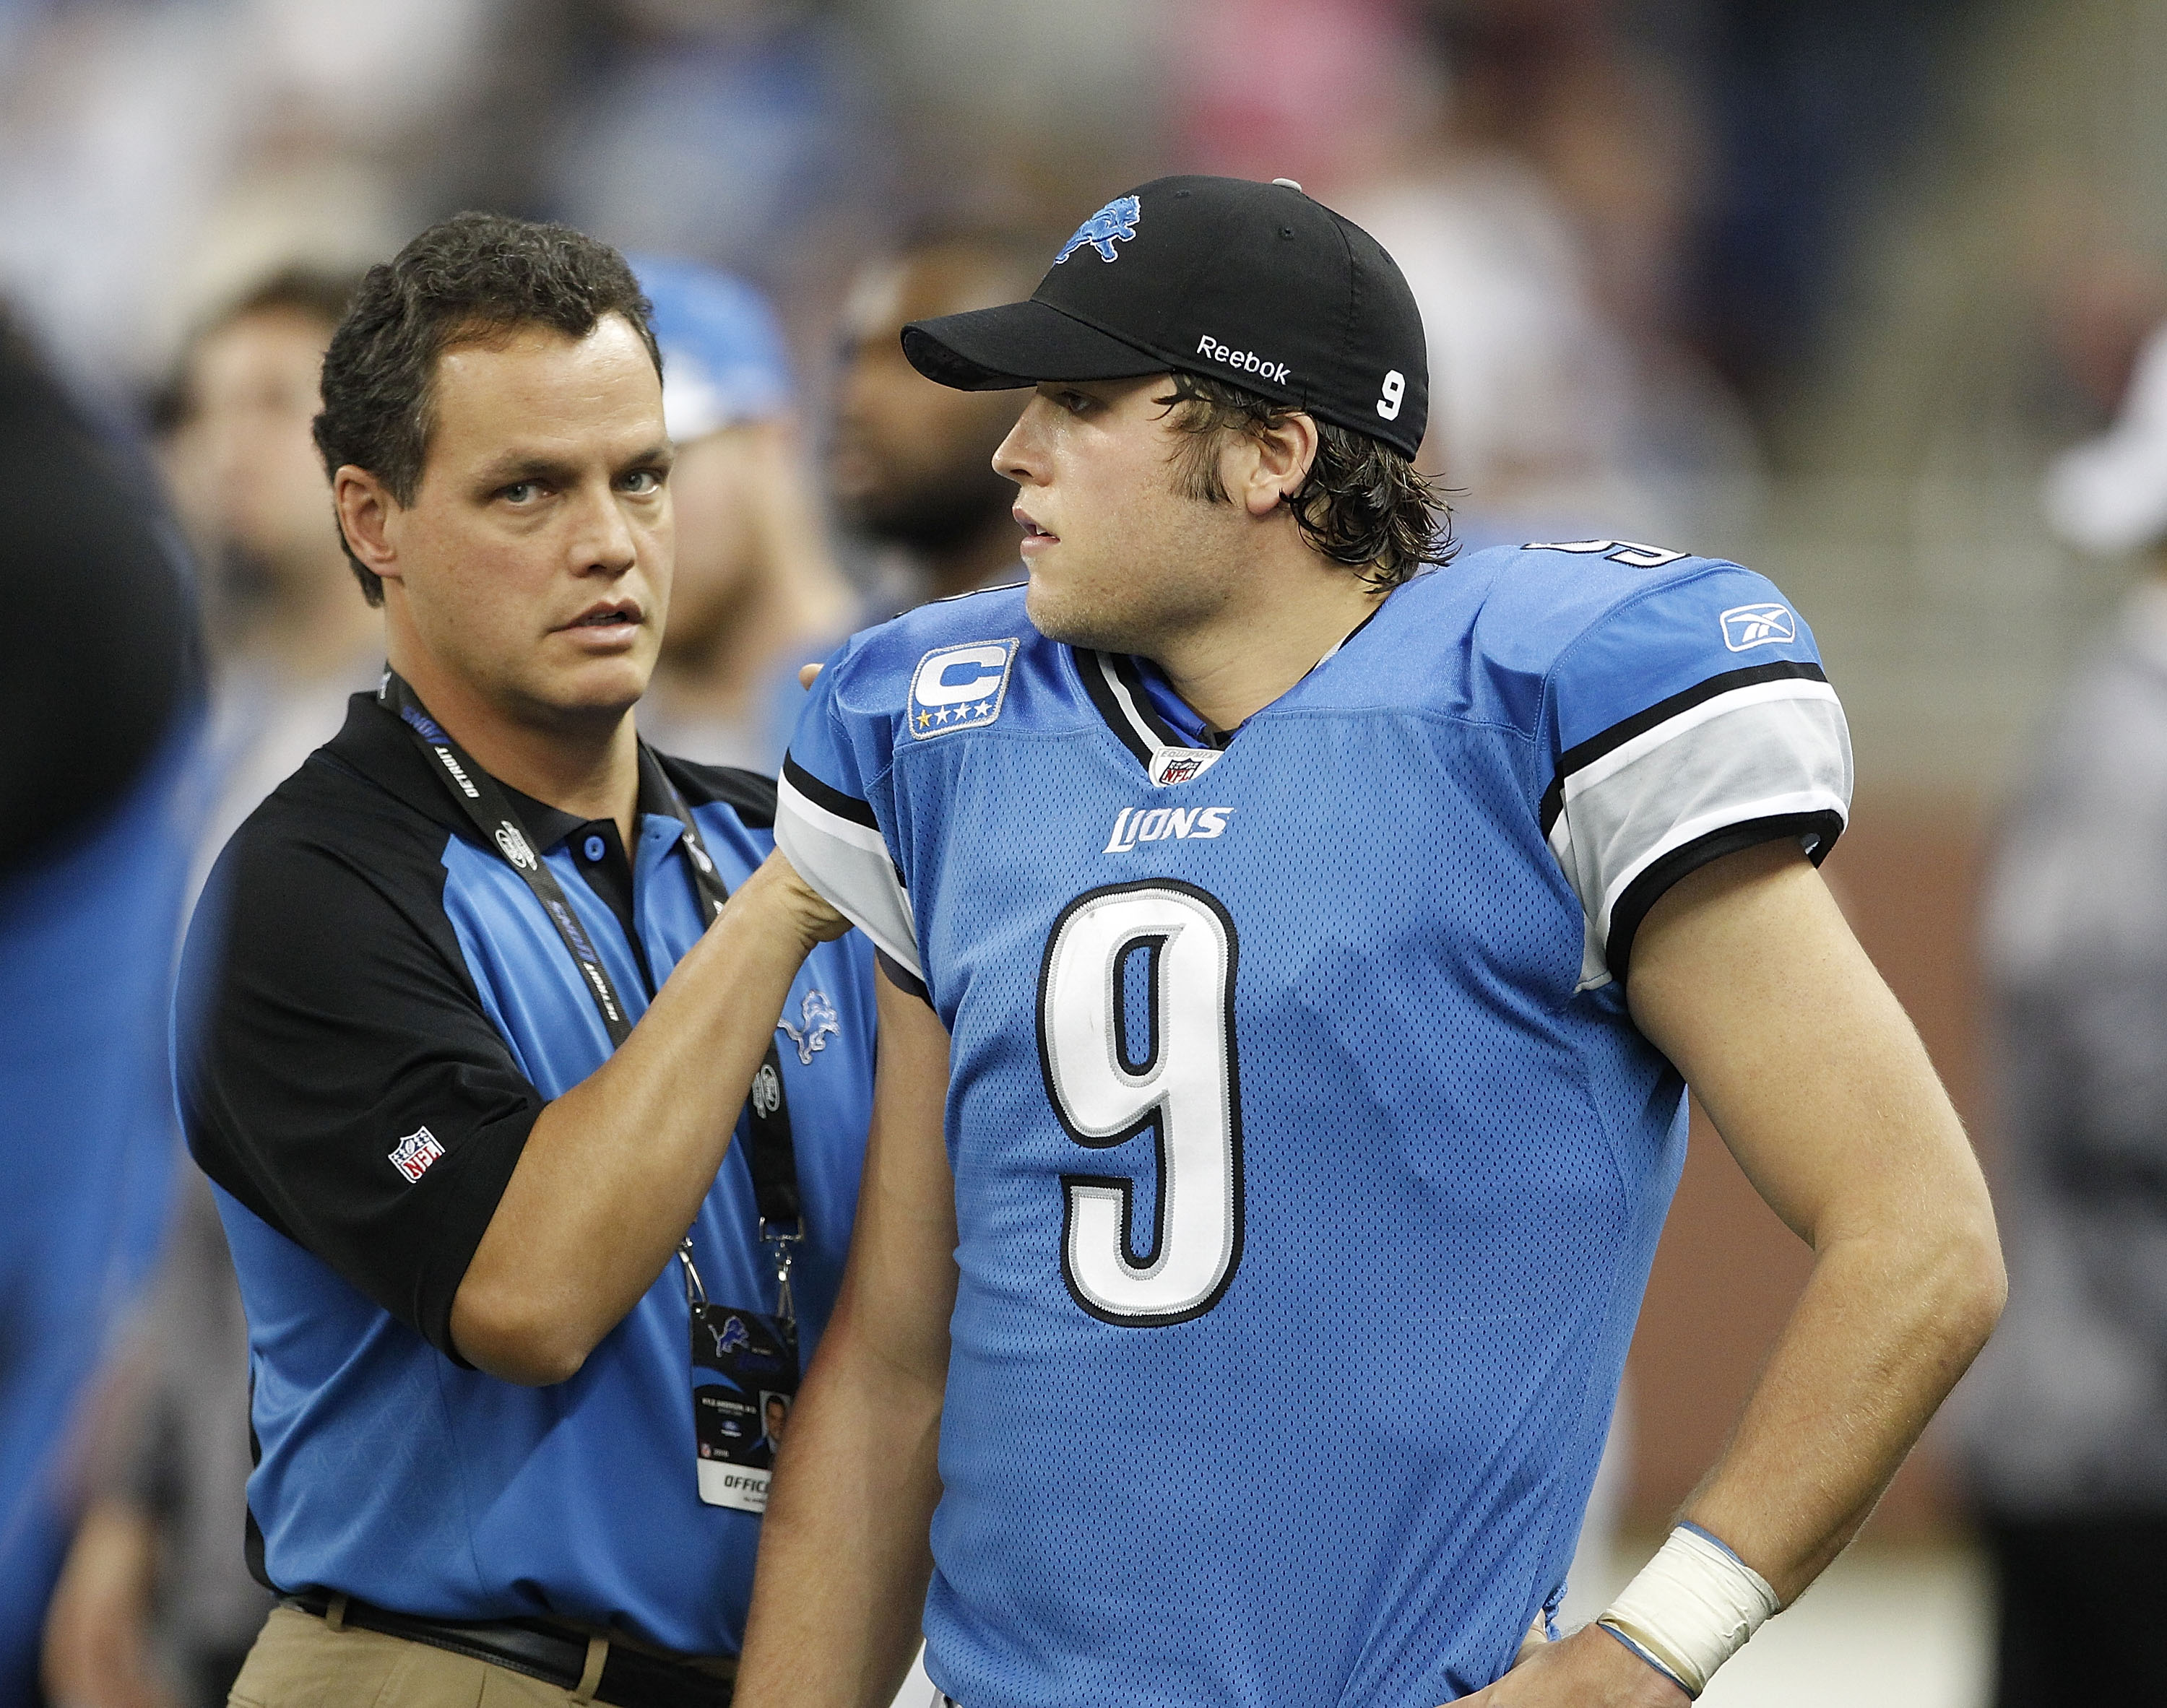 DETROIT - NOVEMBER 07: Detroit Lions team doctor Kyle Anderson checks the right shoulder of Matthew Stafford #9 of the Detroit Lions after leaving the game during the third quarter of the game at Ford Field on November 7, 2010 in Detroit, Michigan. The Je